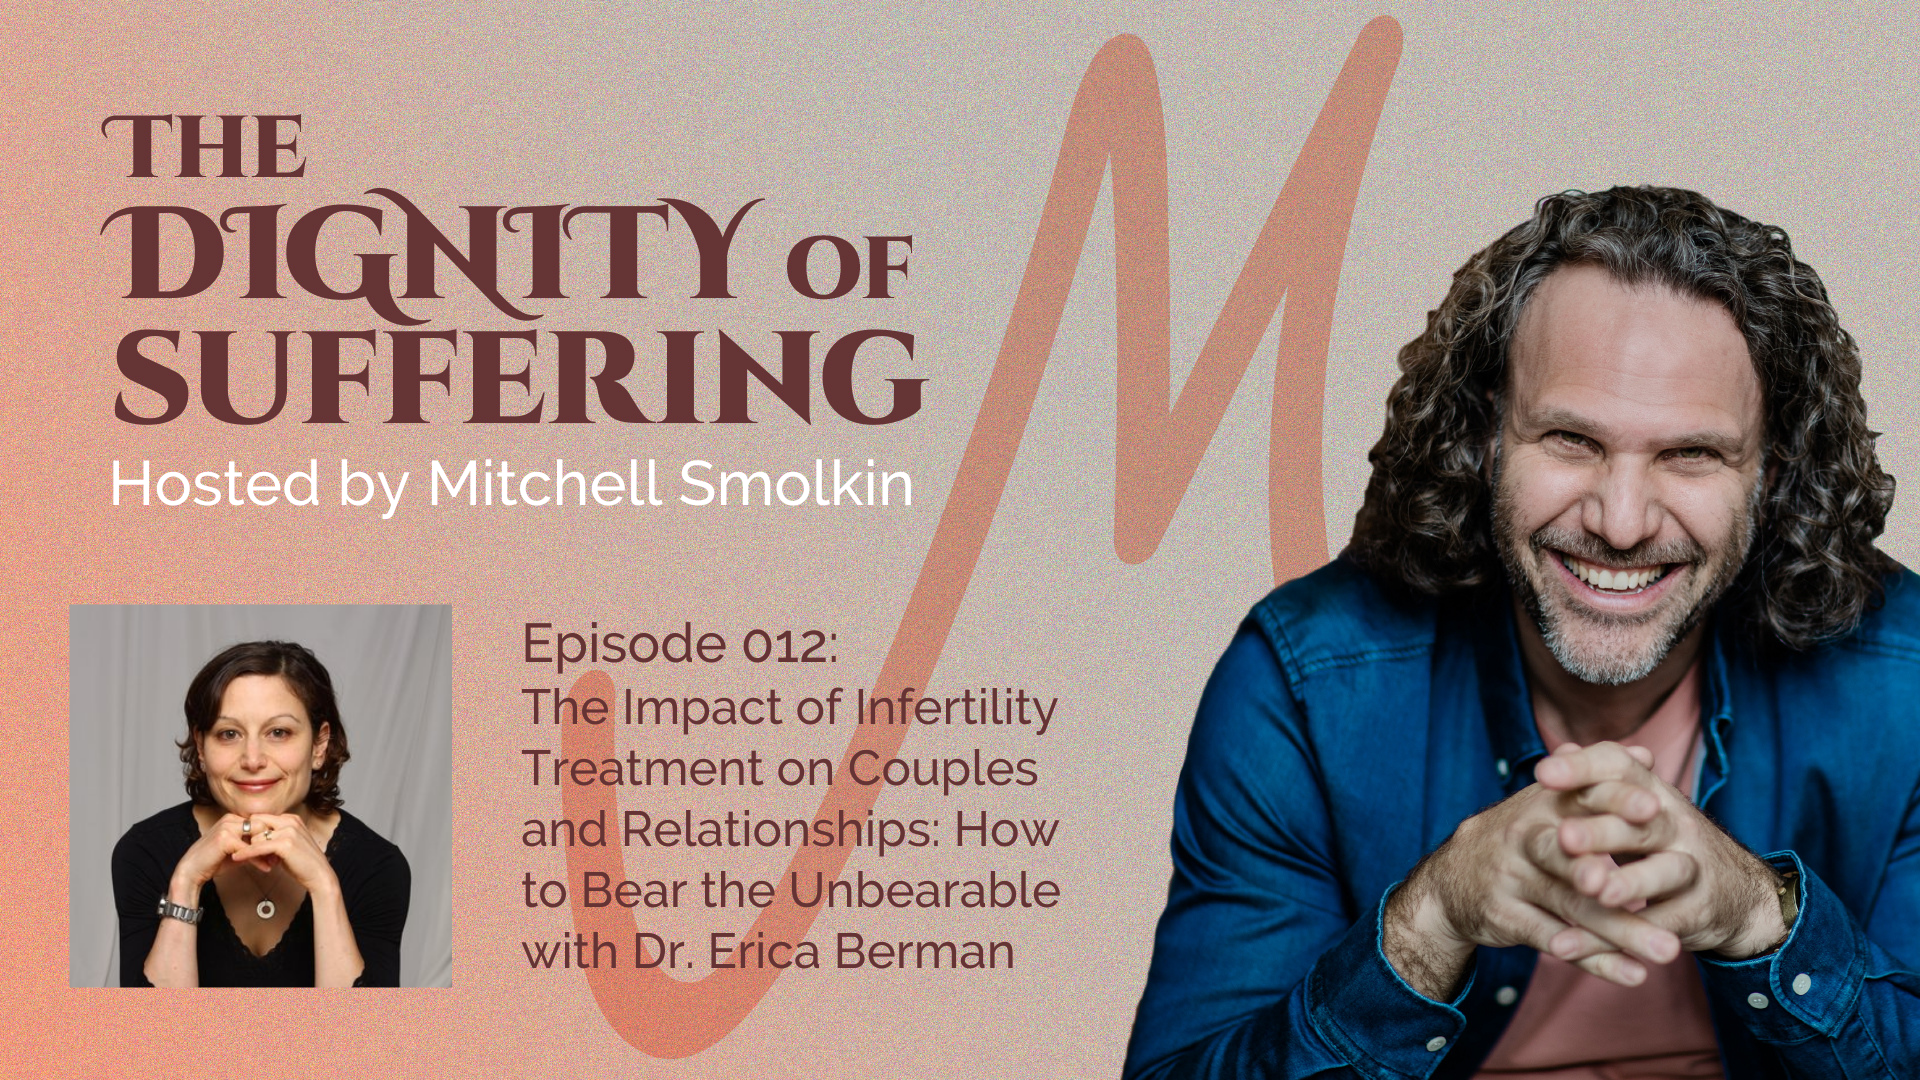 Episode 012: The Impact of Infertility Treatment on Couples and Relationships: How to Bear the Unbearable with Dr. Erica Berman